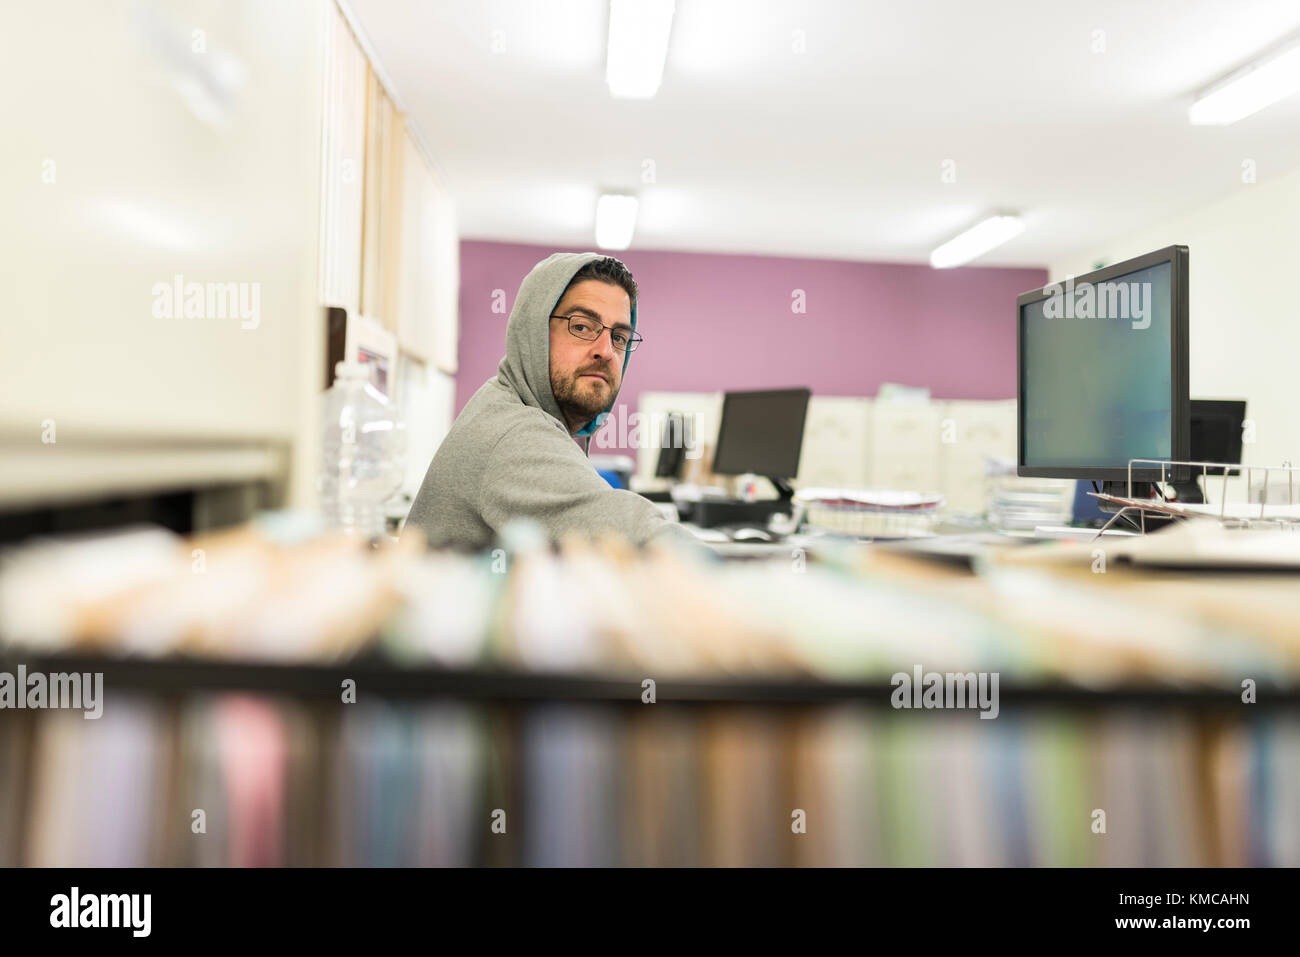 40 years old man looking computer and working with sweatshirt and hood in office - Stock Image